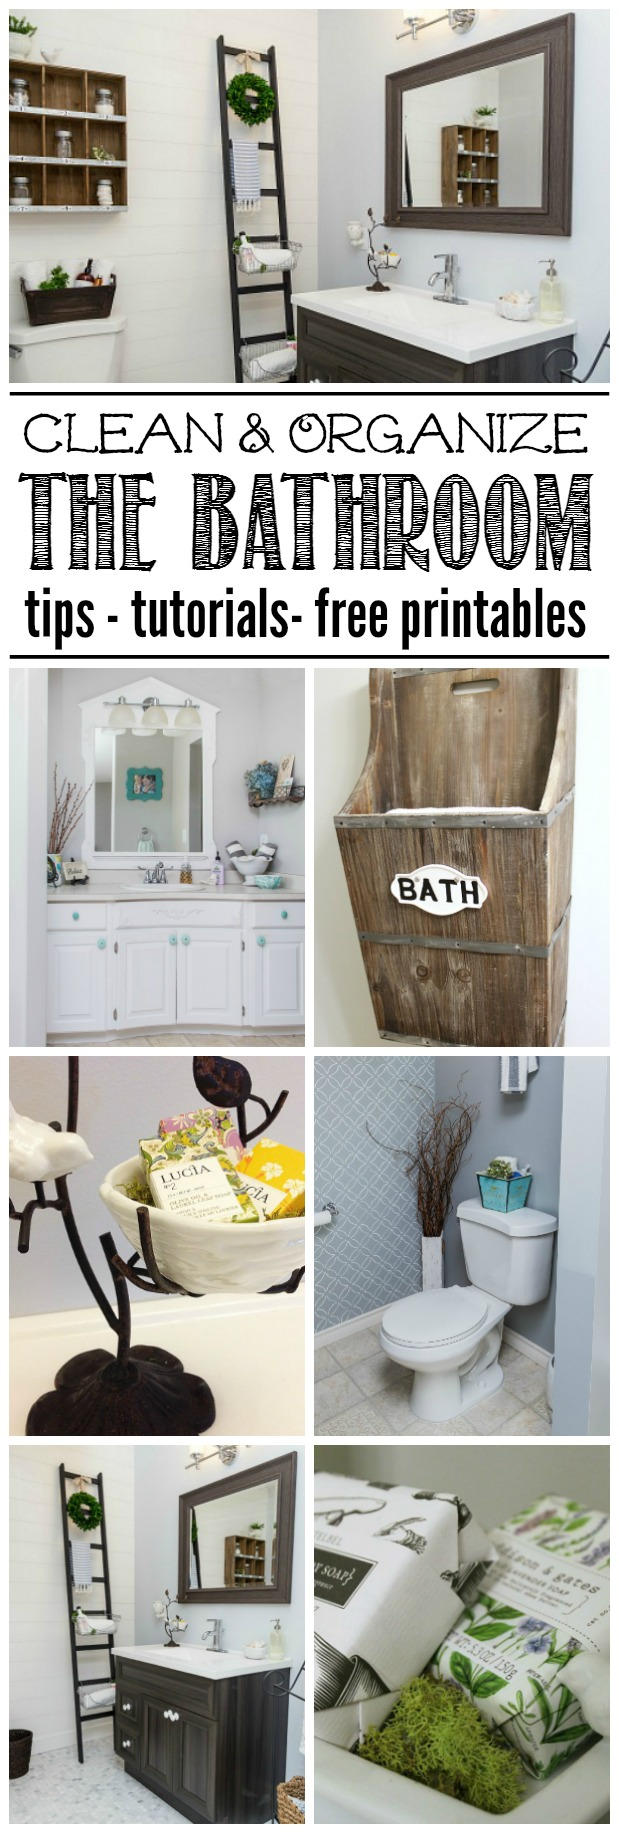 Bathroom Cleaning And Organization Ideas